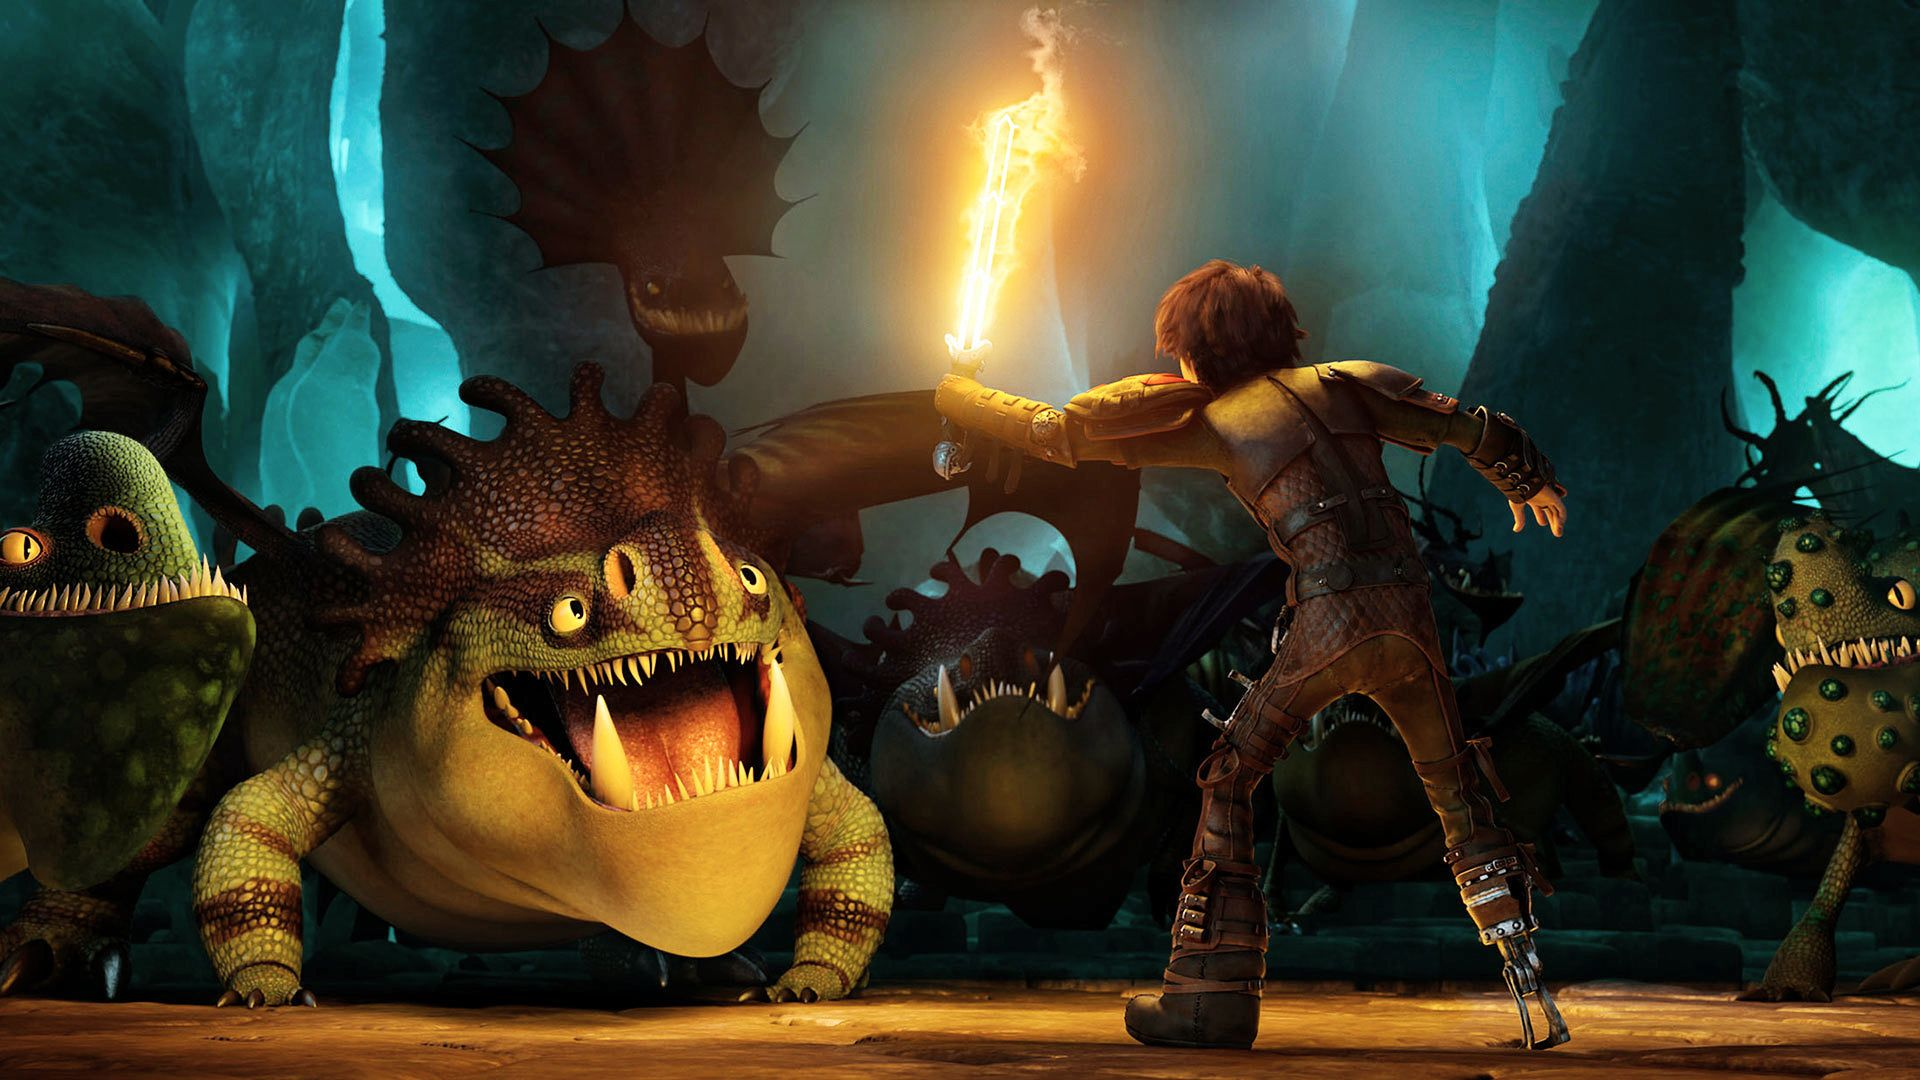 How To Train Your Dragon Desktop Wallpaper 49097 1920x1080px